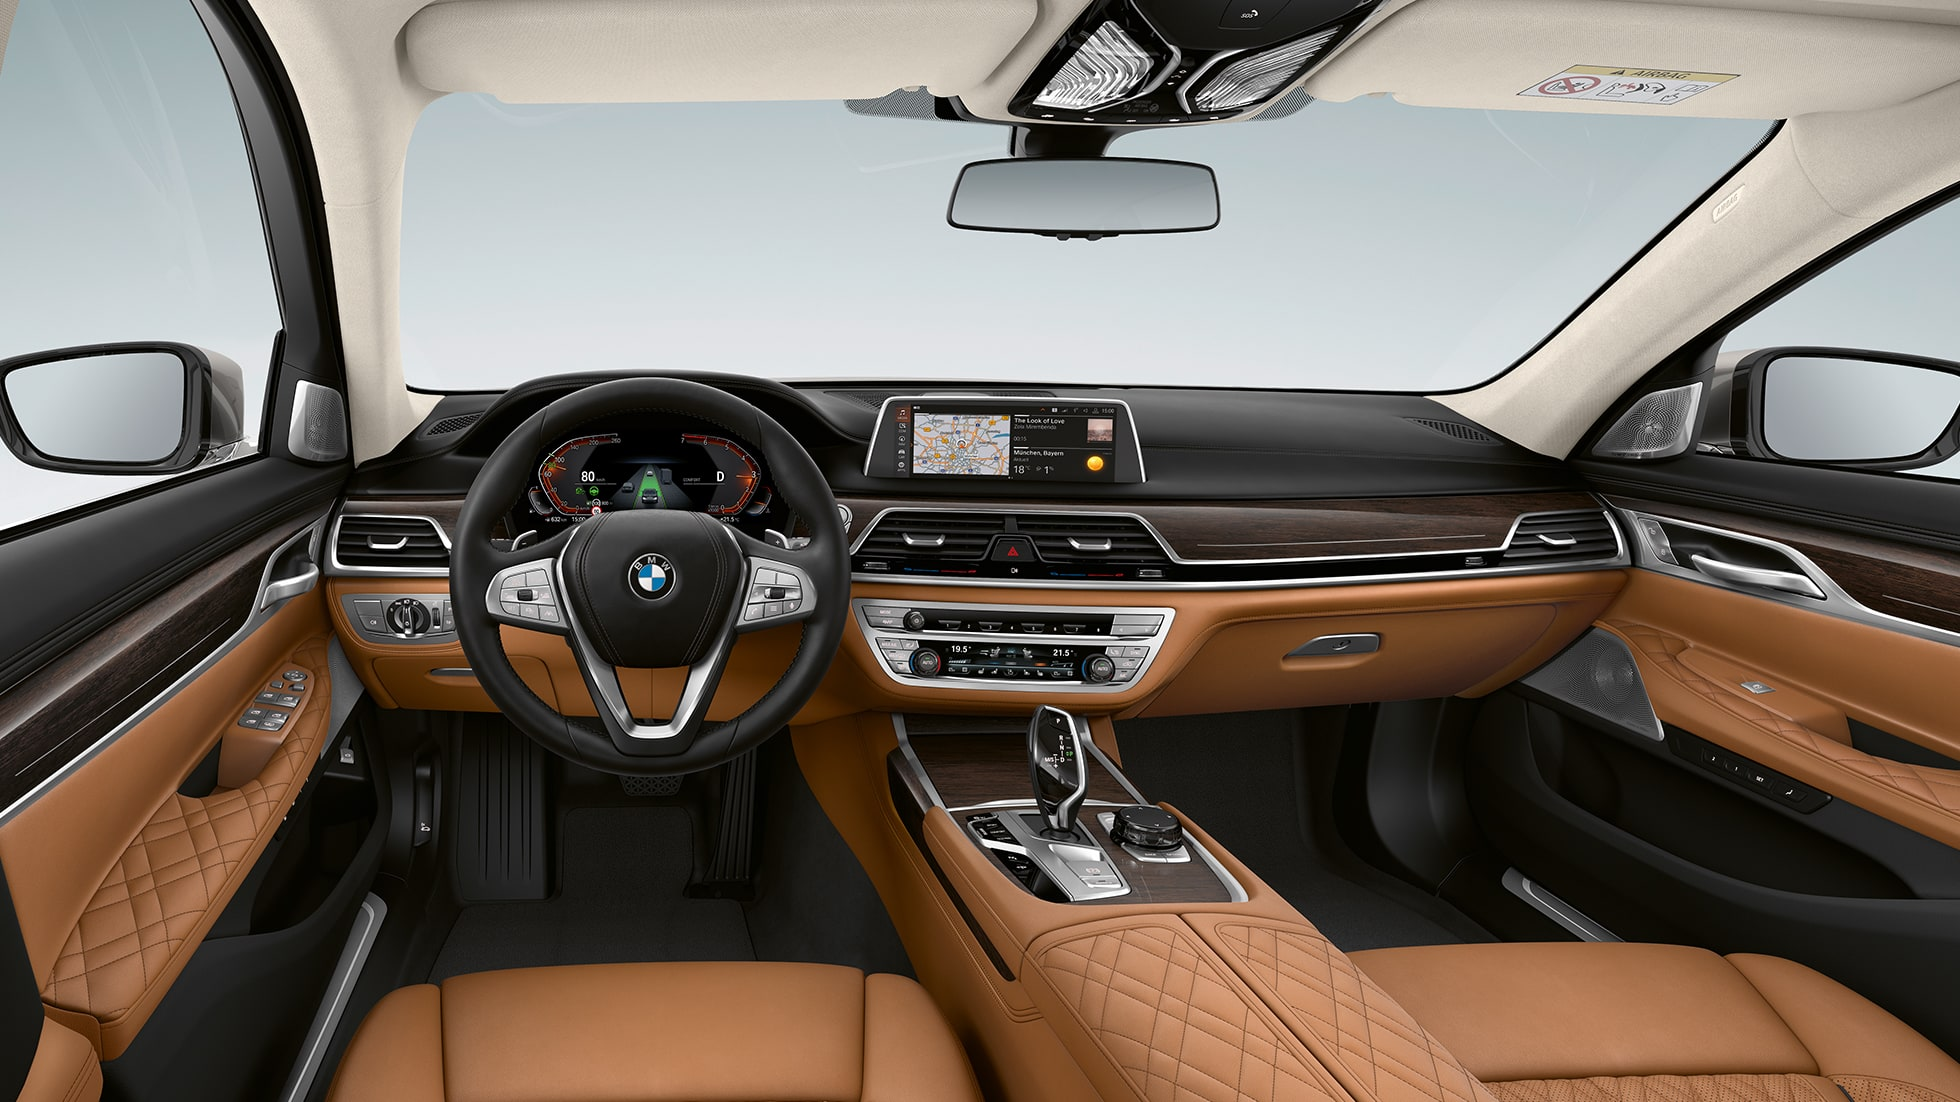 BMW 7 Series Sedan with Exterior Design Pure Excellence Interior G11